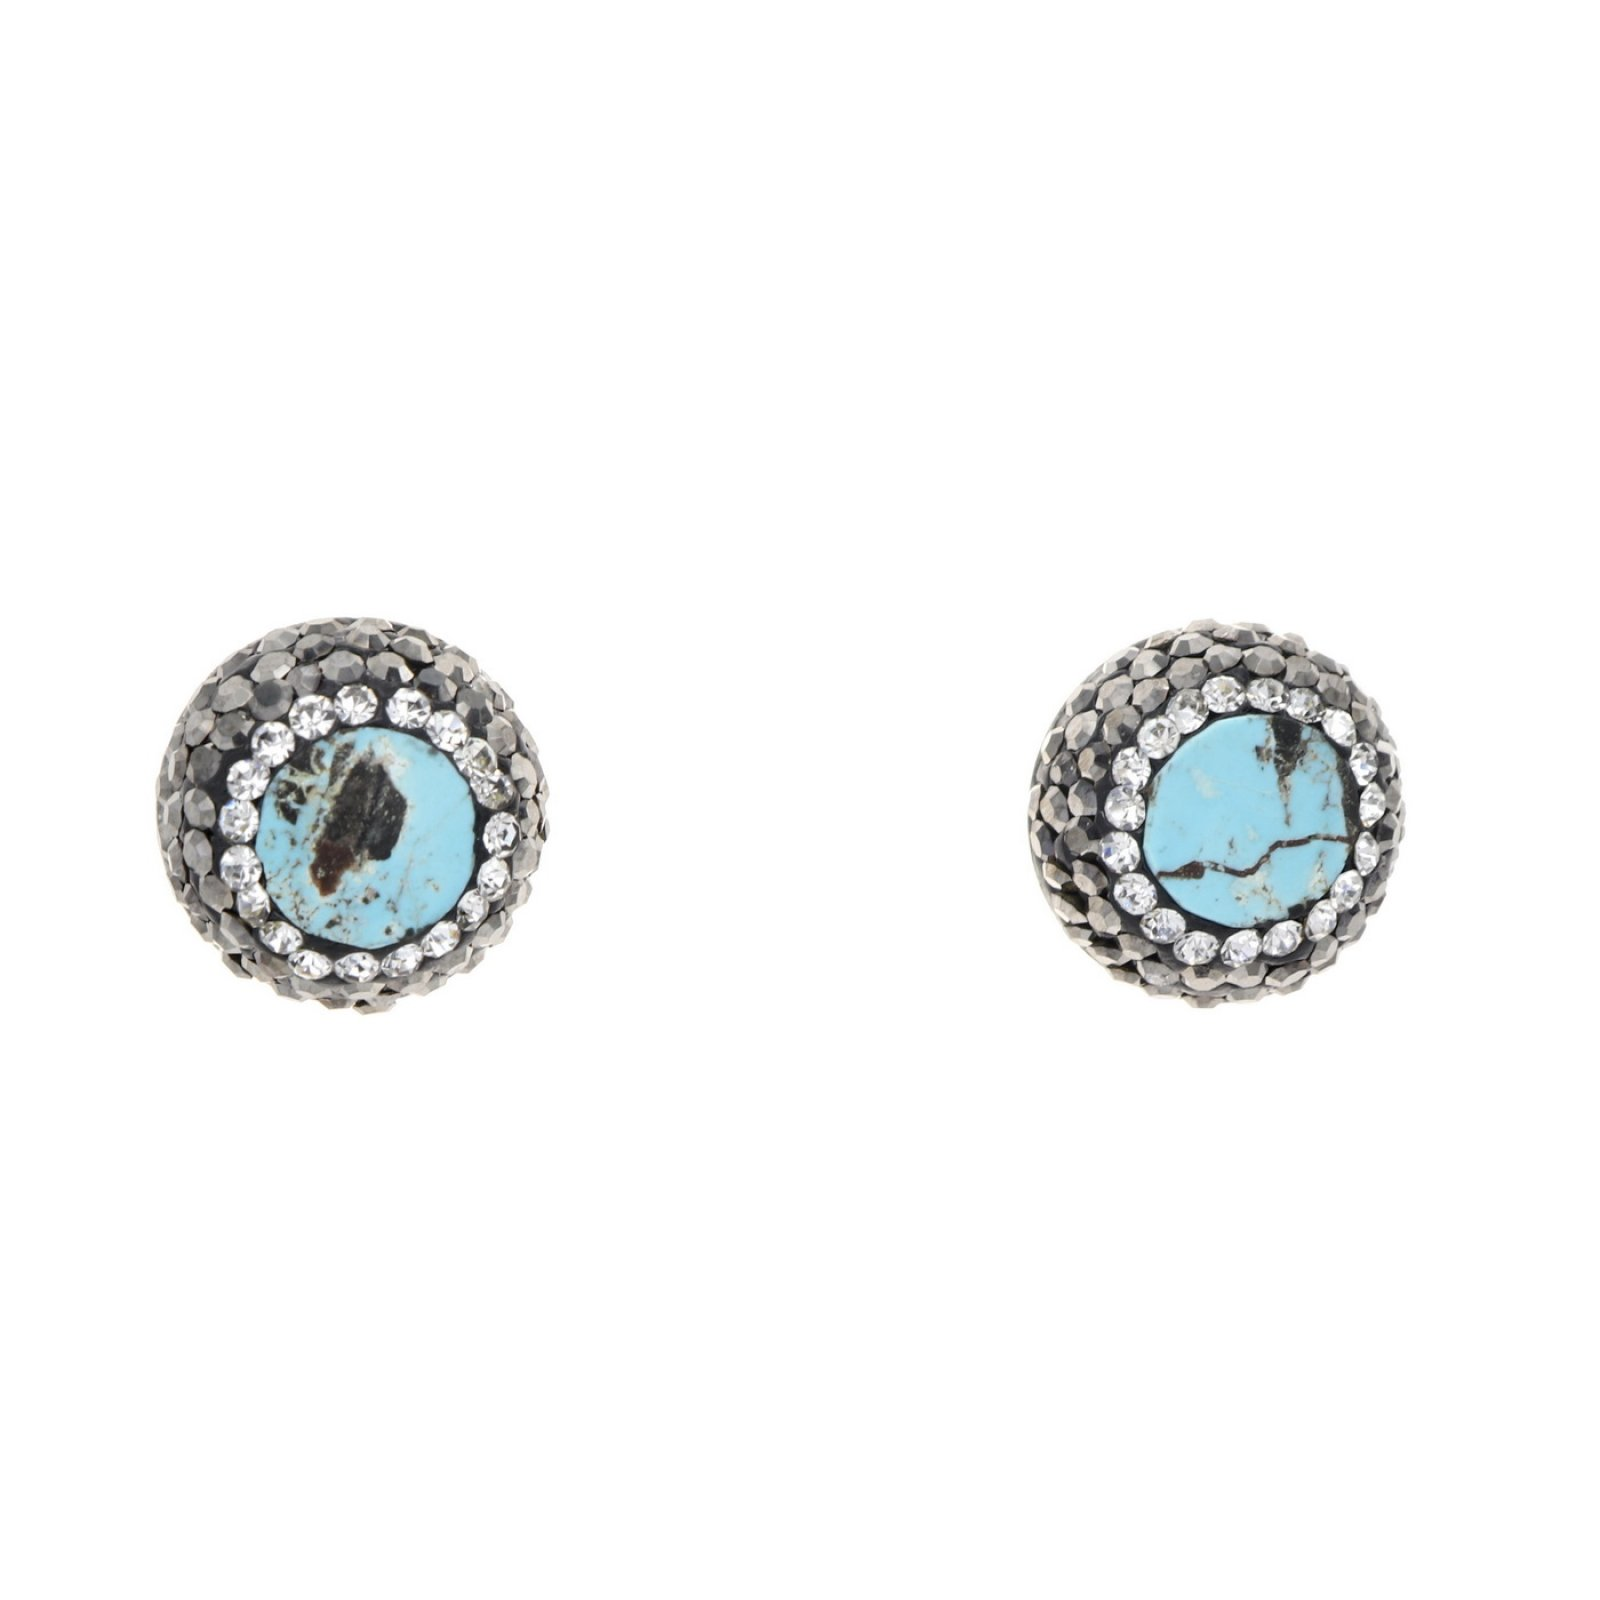 DRE138- TURQUOISE STUD EARRING